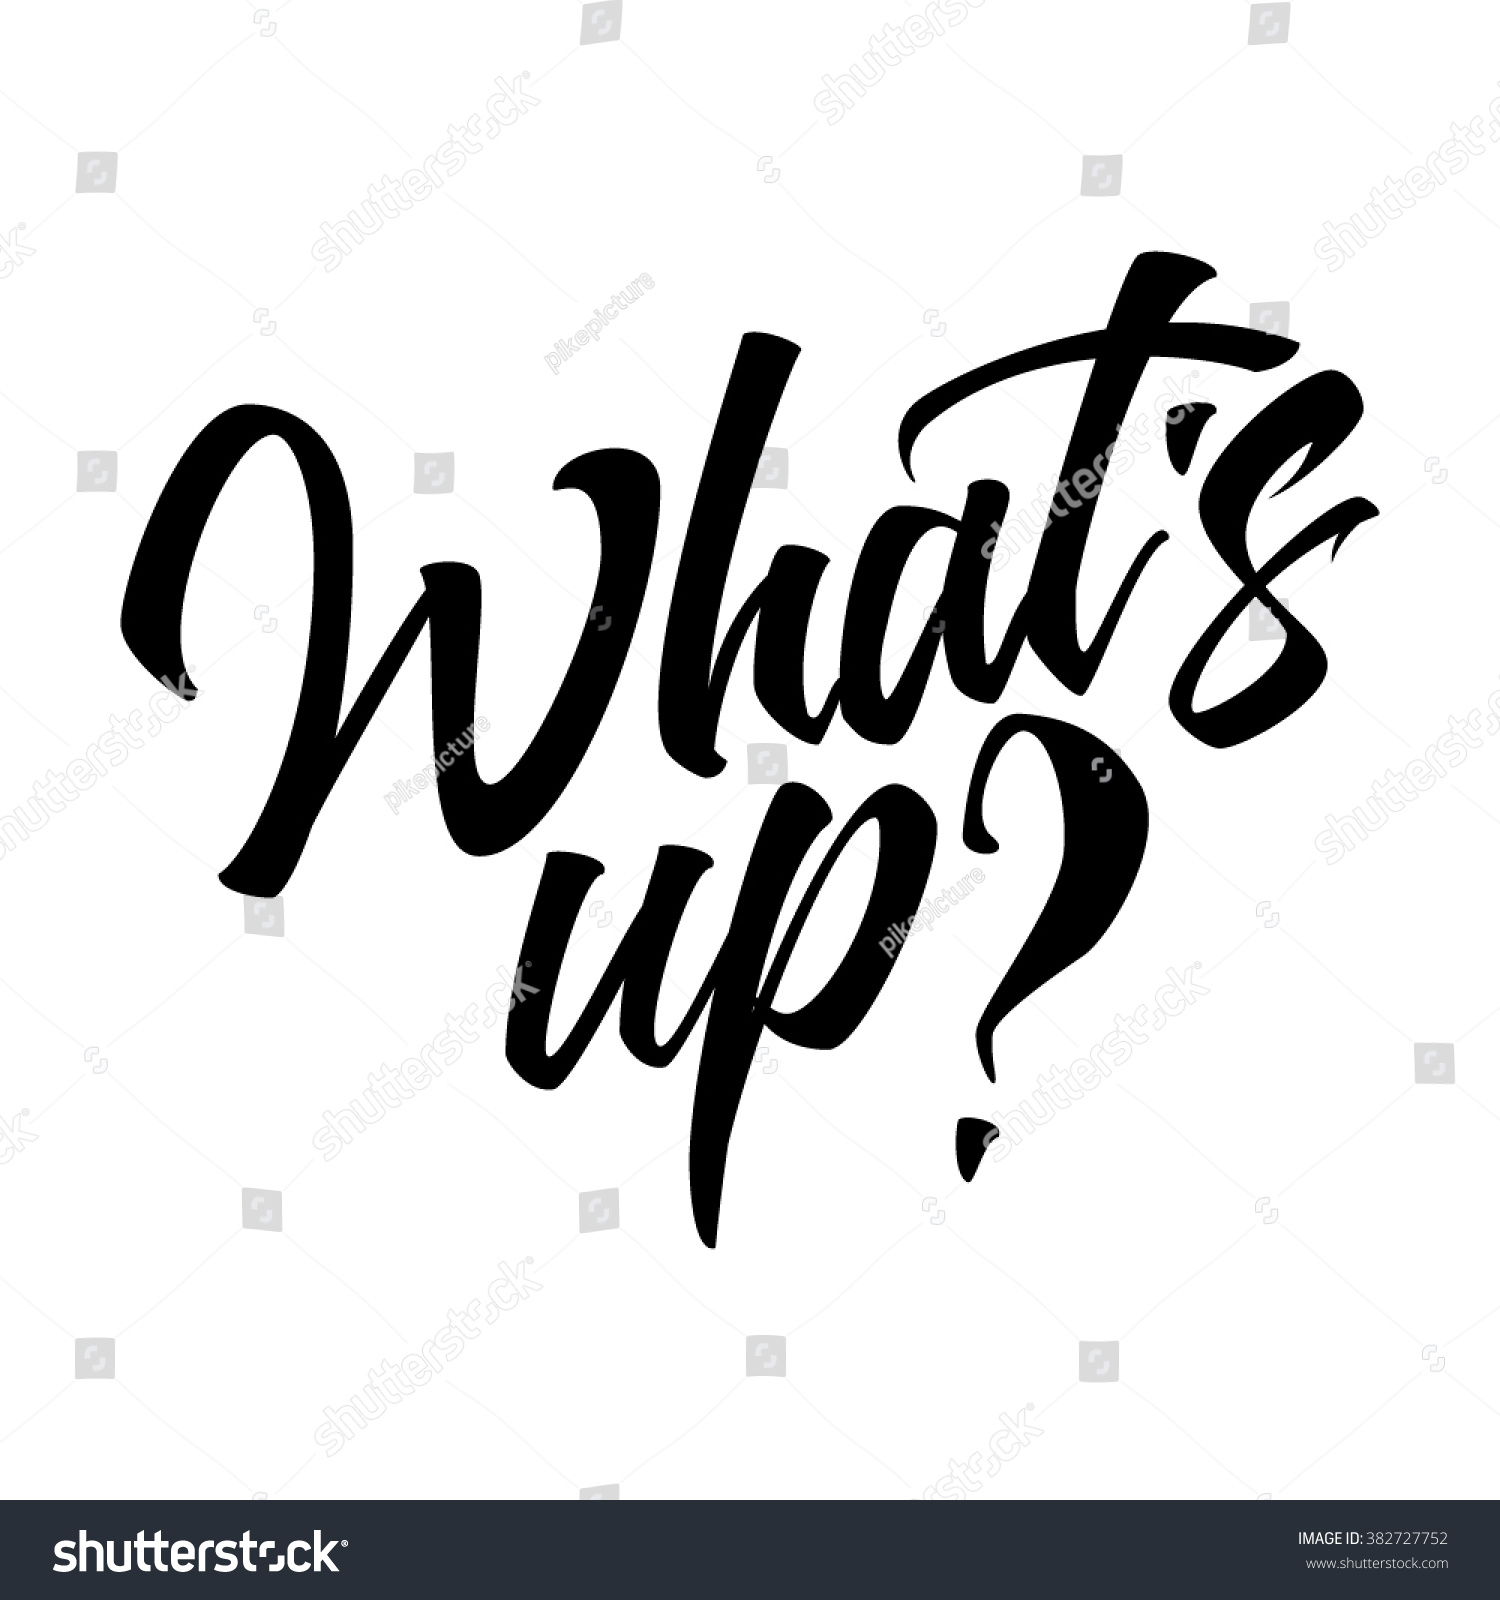 whats black hand lettering text isolated stock vector 382727752 shutterstock